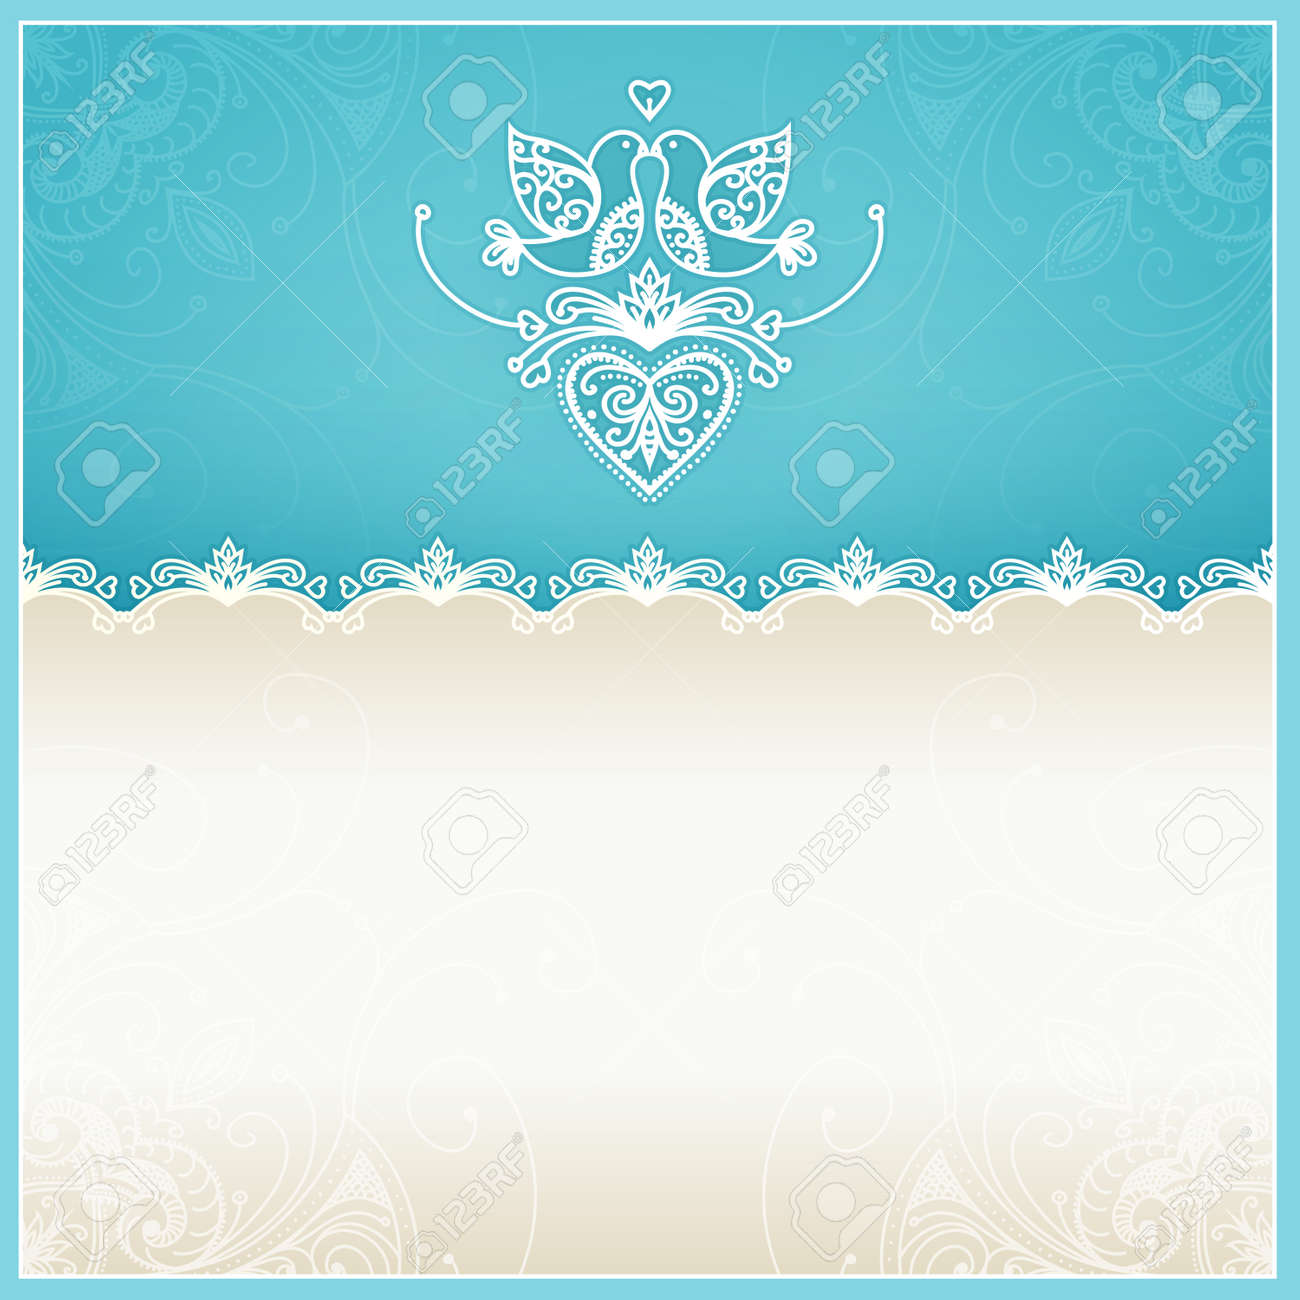 Blue Wedding Invitation Design Template With Doves, Hearts, Flowers ...